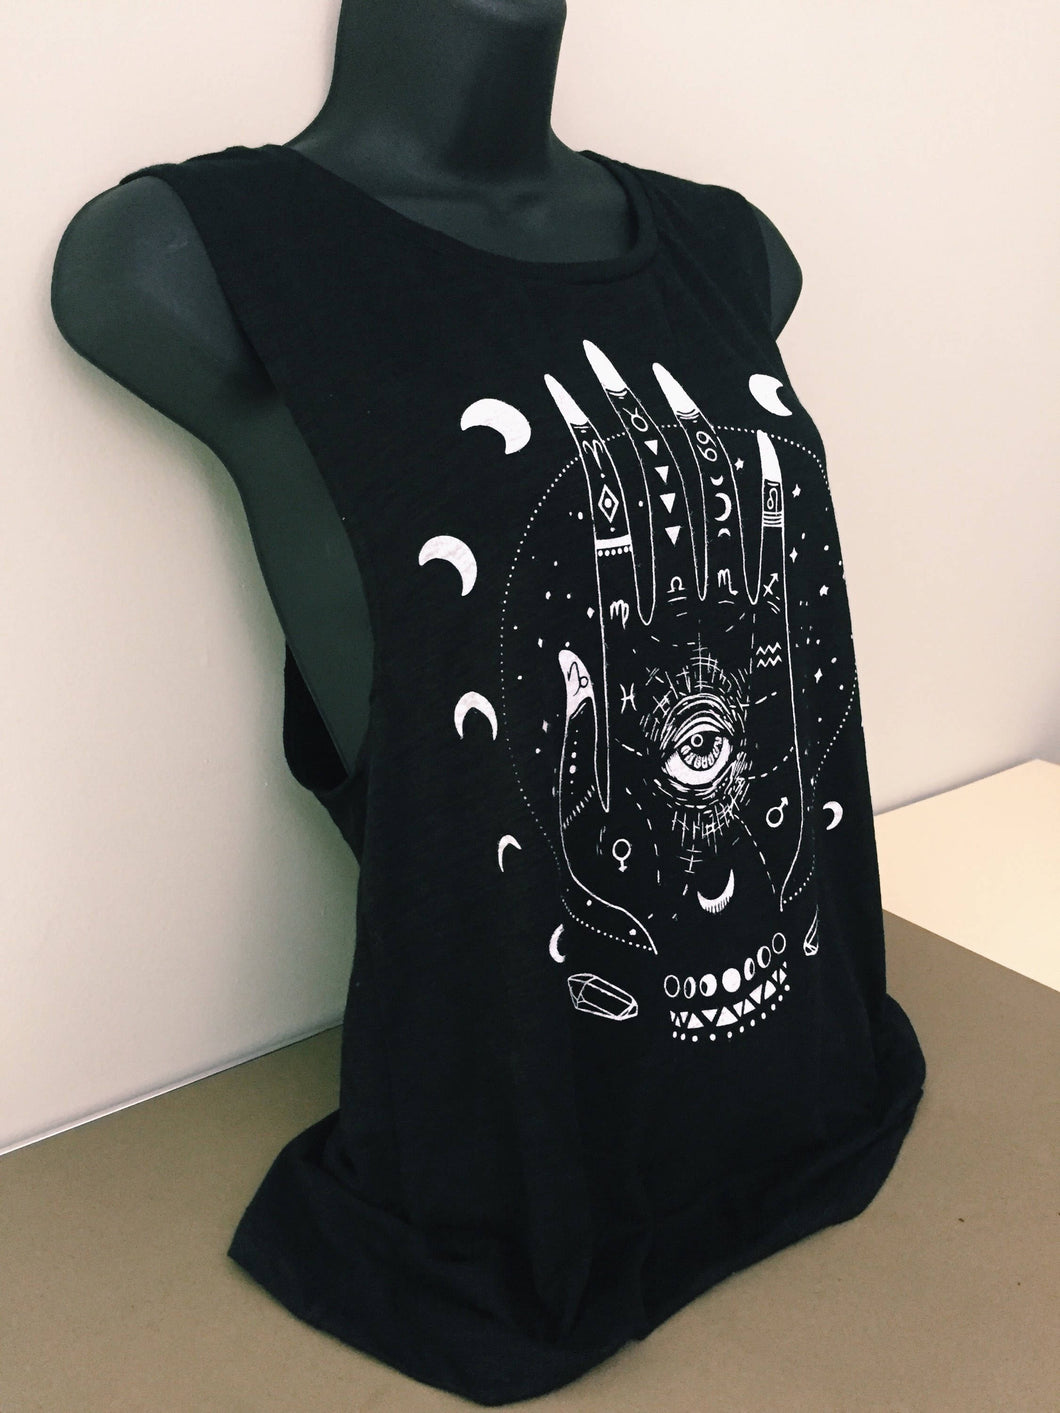 Divine Hand Muscle Tank - Moon Phase Astrology Symbol - Witchy Tank - Festival Clothing - Yoga Tank Top - Festival Tank Top - READY to SHIP